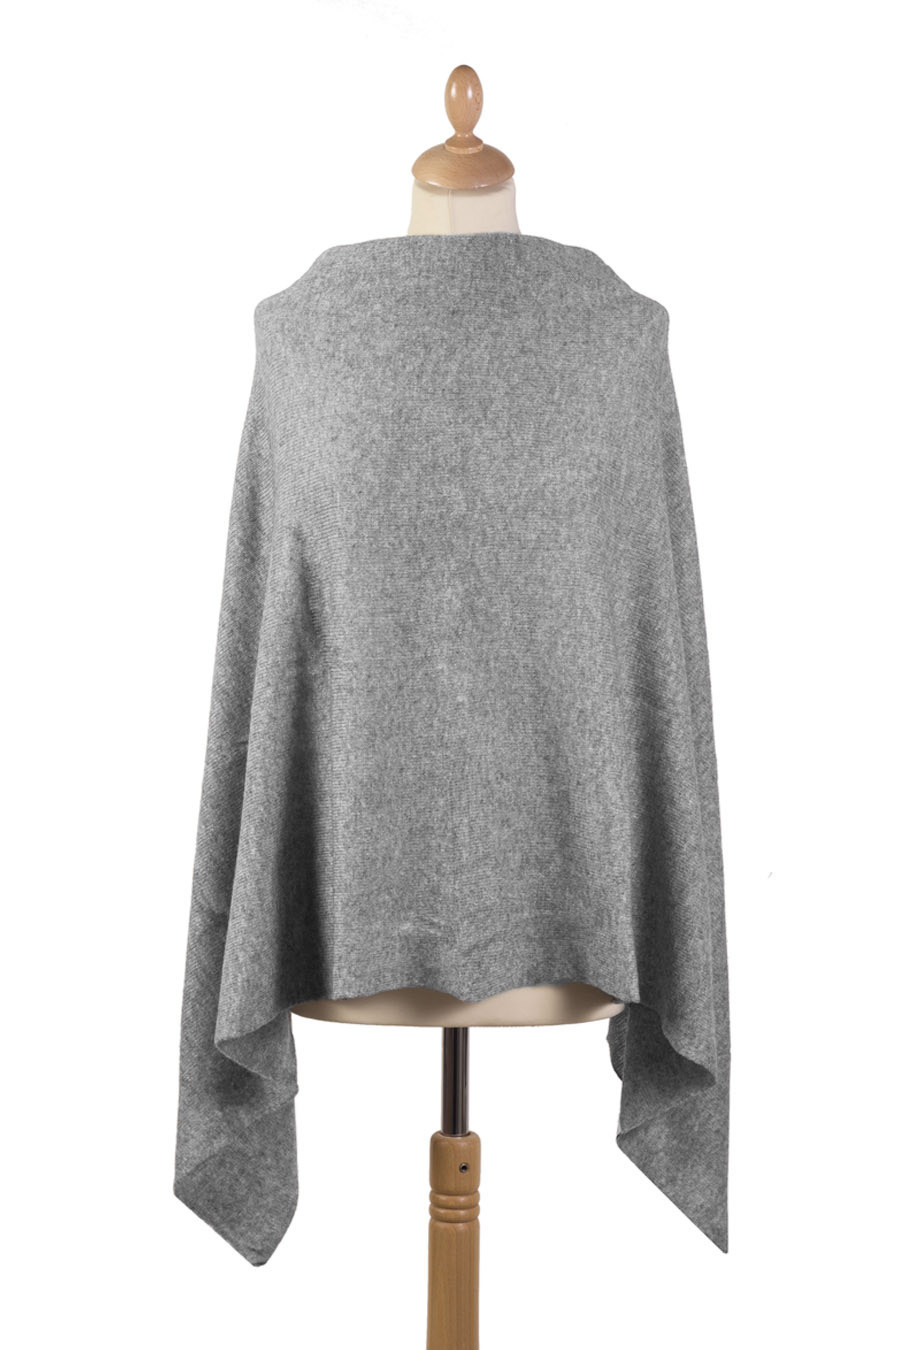 Poncho cachemire SYRMA Gris chiné